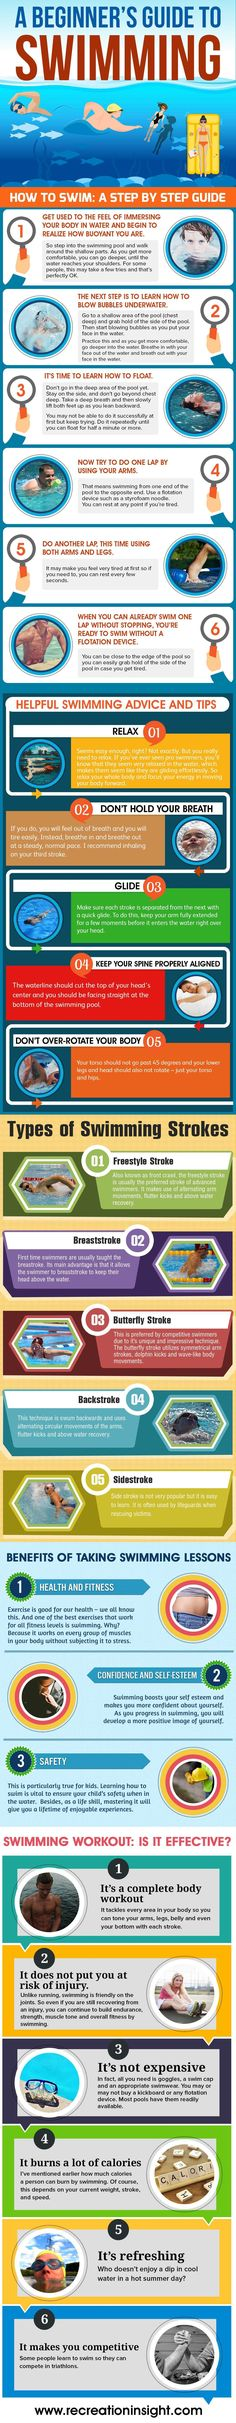 http://www.recreationinsight.com Learn how to swim with the most helpful tips & advice on swimming lessons for both baby and adults. This infographic also provide about swimming workout and it's benefit of swimming. For More Health And Fitness Tips Visit Our Website